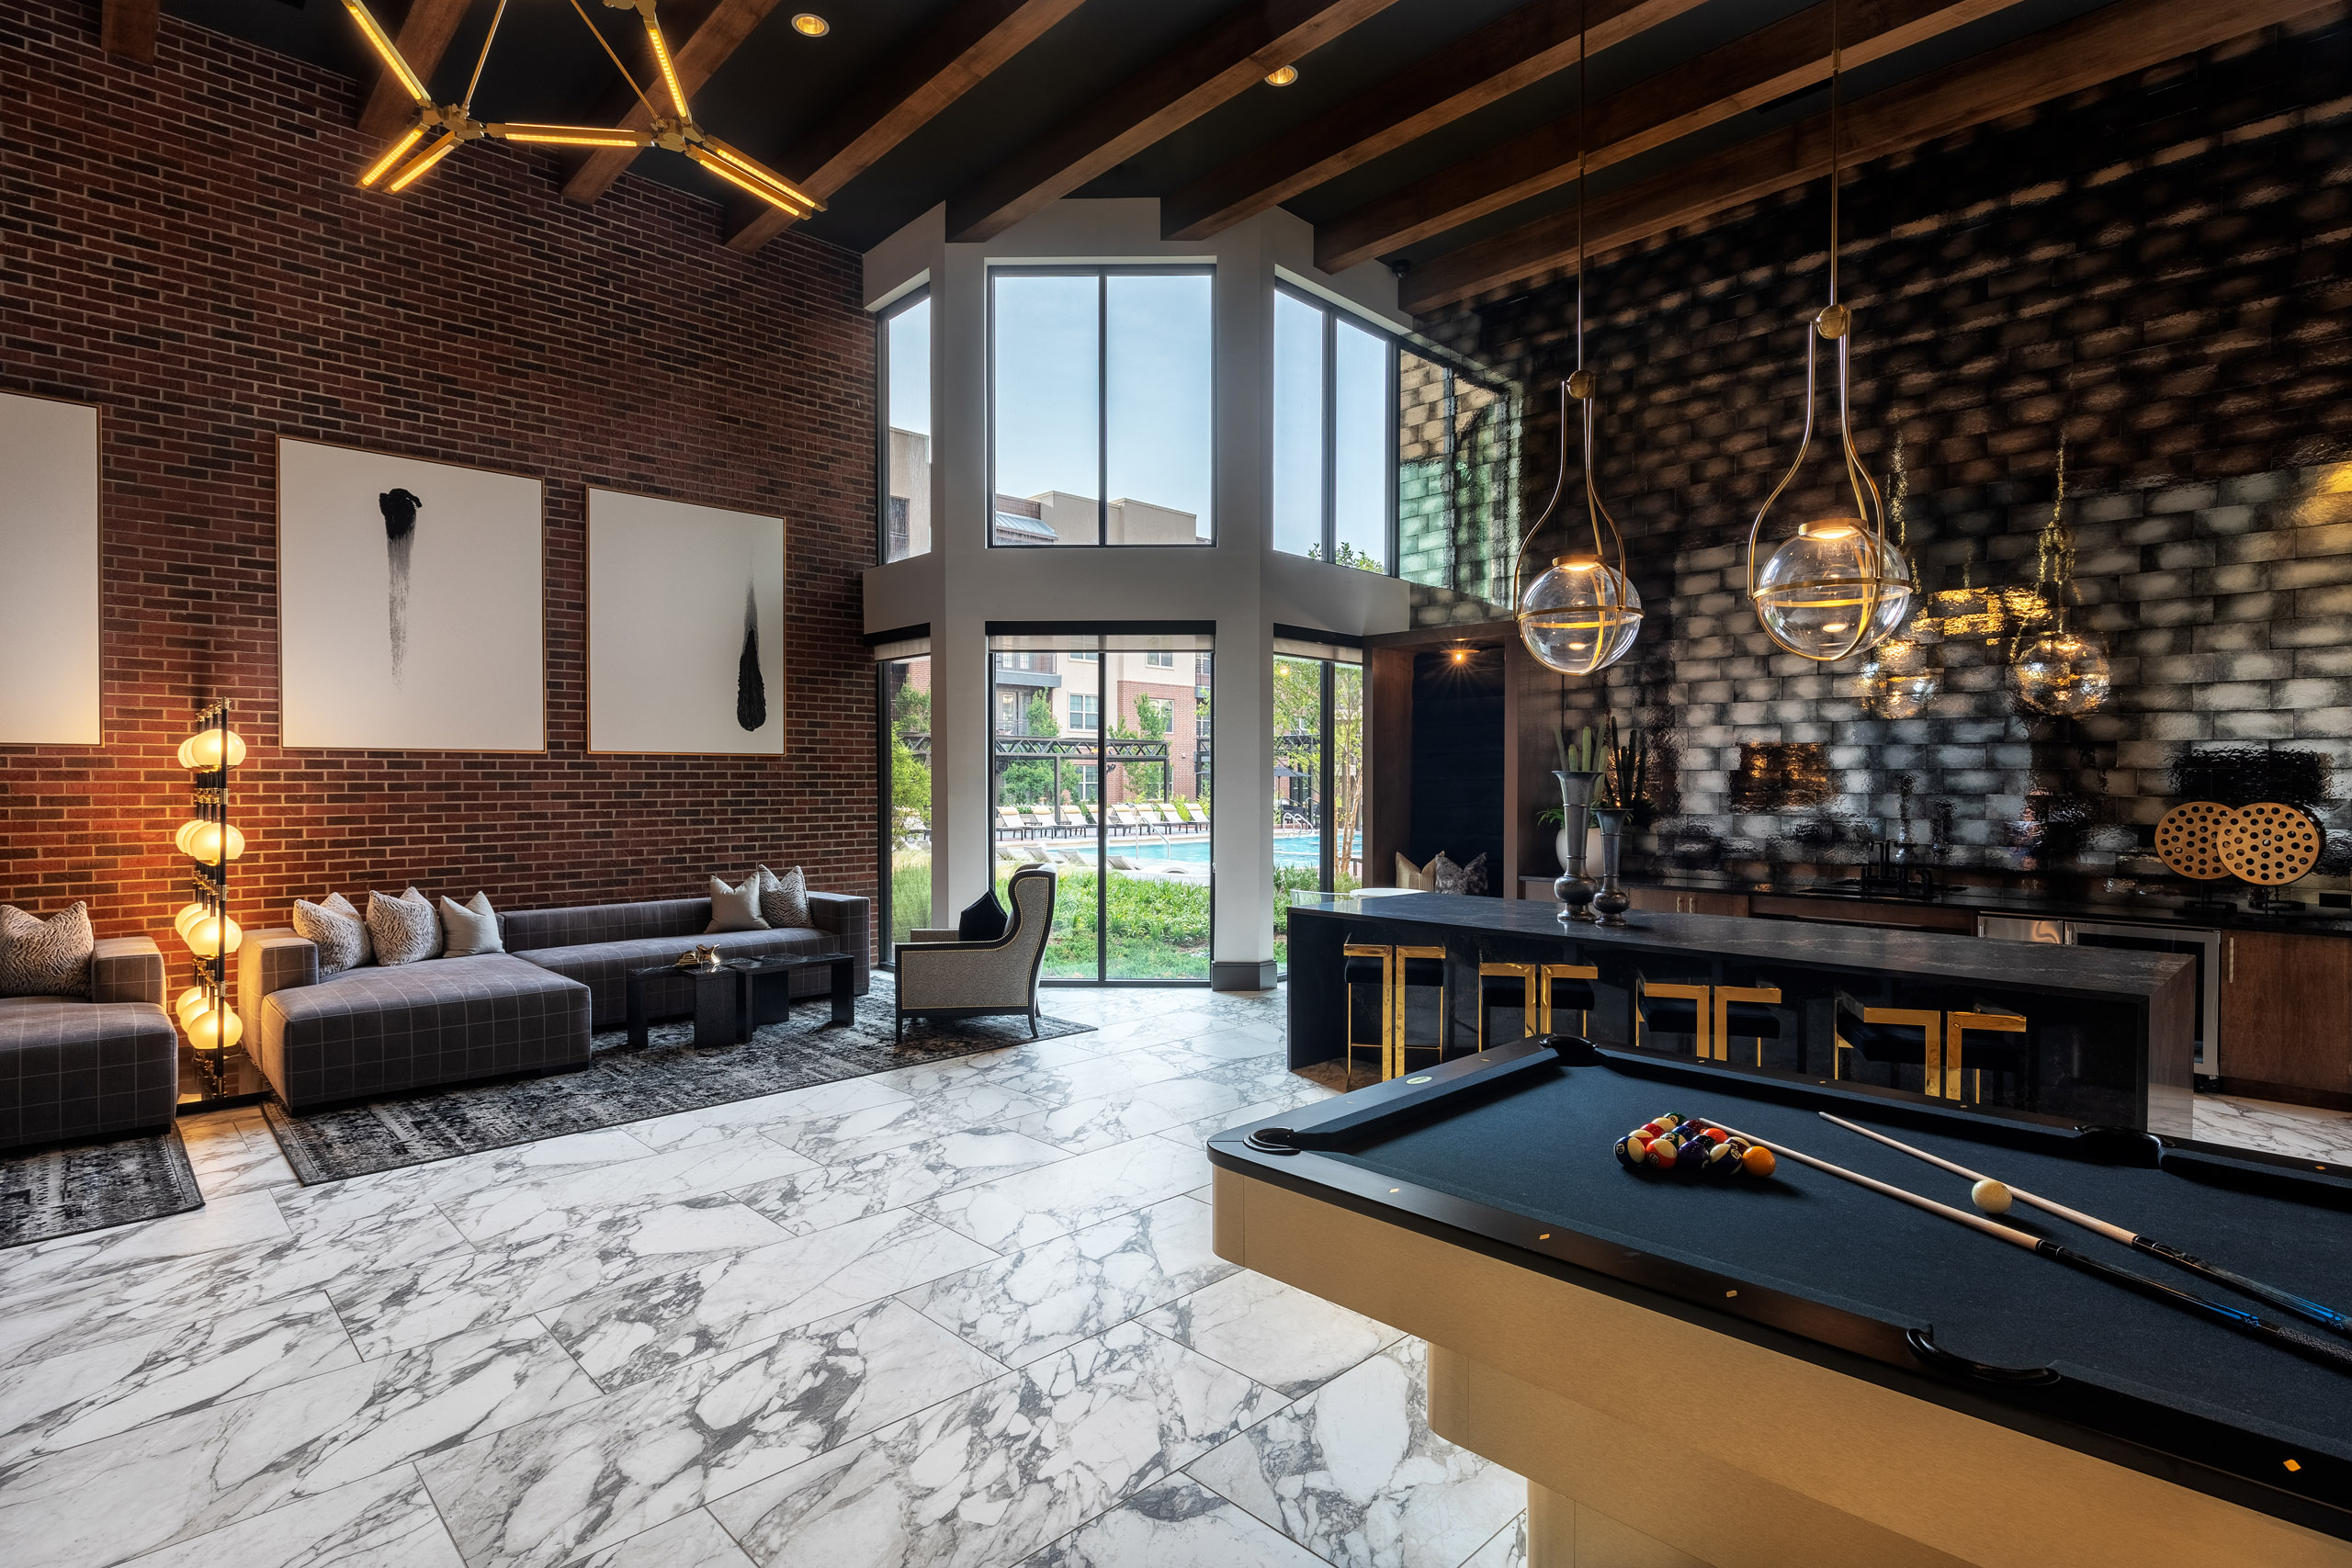 AMLI Grapevine apartment building clubroom with gray tile flooring and catering kitchen and lounge seating and pool table